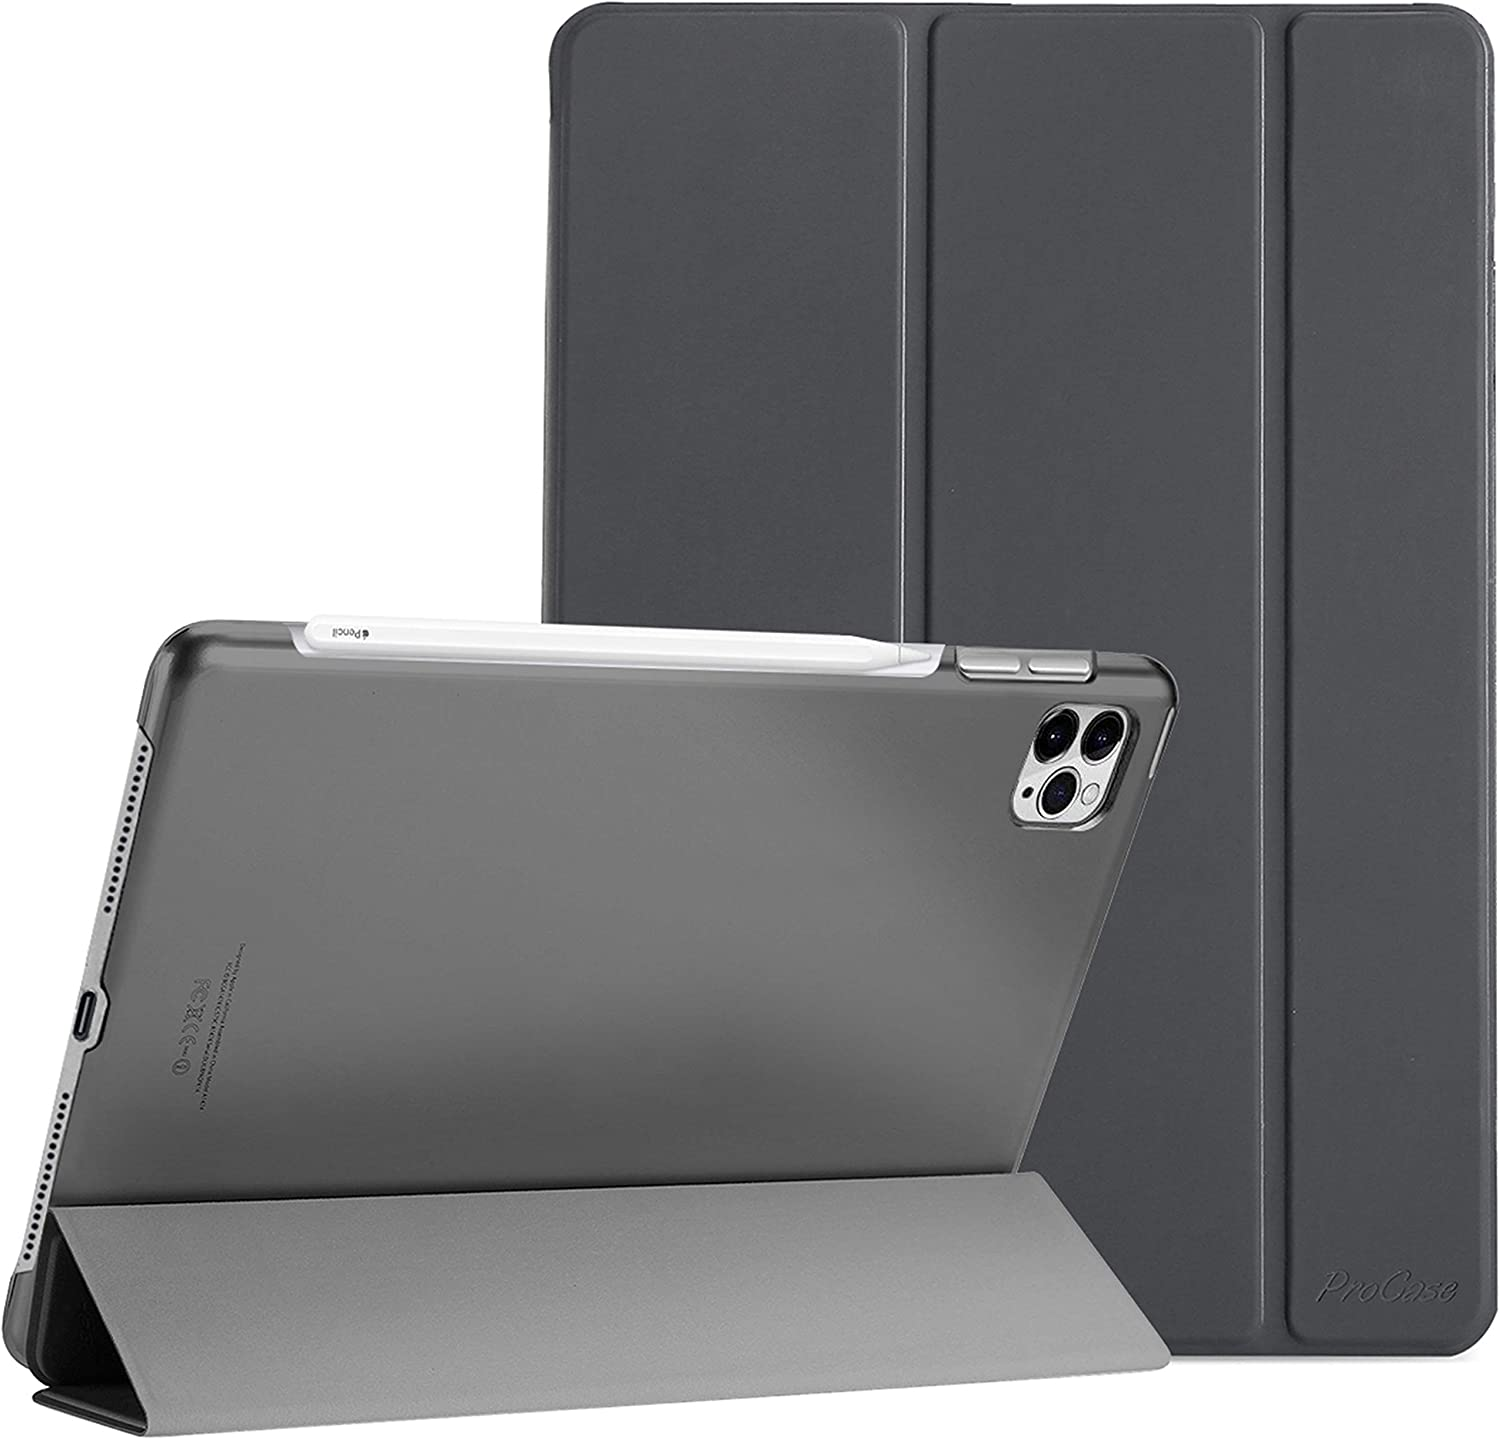 """ProCase iPad Pro 12.9 Case 4th Generation 2020 2018, [Support Apple Pencil 2 Charging] Slim Stand Hard Back Shell Smart Cover for iPad Pro 12.9"""" 4th Gen 2020 / iPad Pro 12.9"""" 3rd Gen 2018 –Grey"""